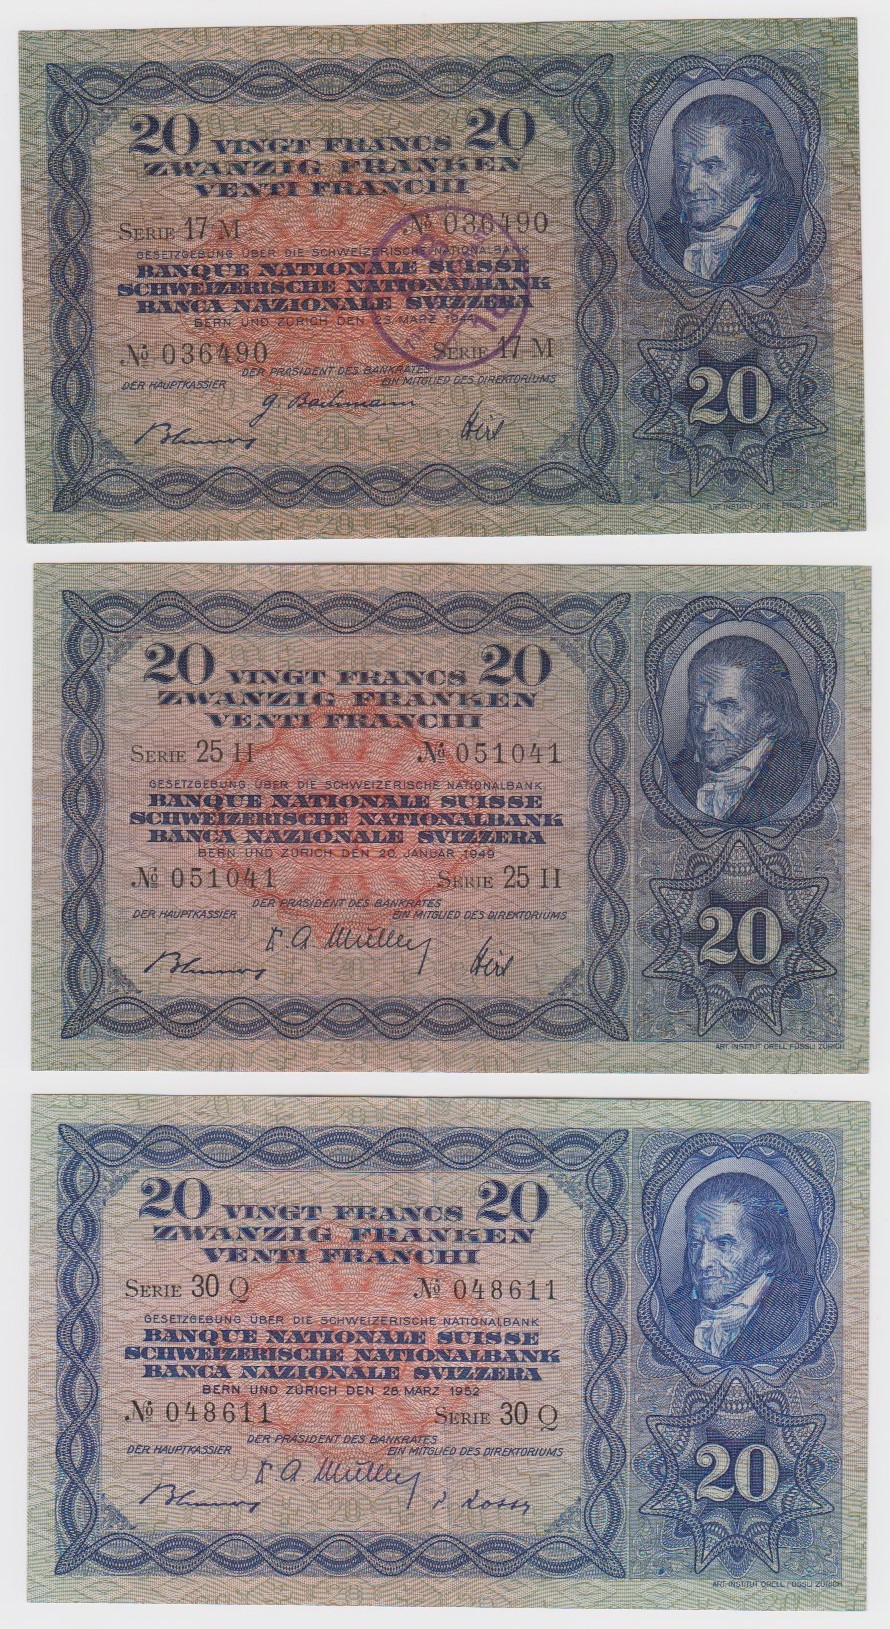 Switzerland 20 Franken (3), dated 28th March 1952 serial 30Q 048611, 20th January 1949 serial 25H